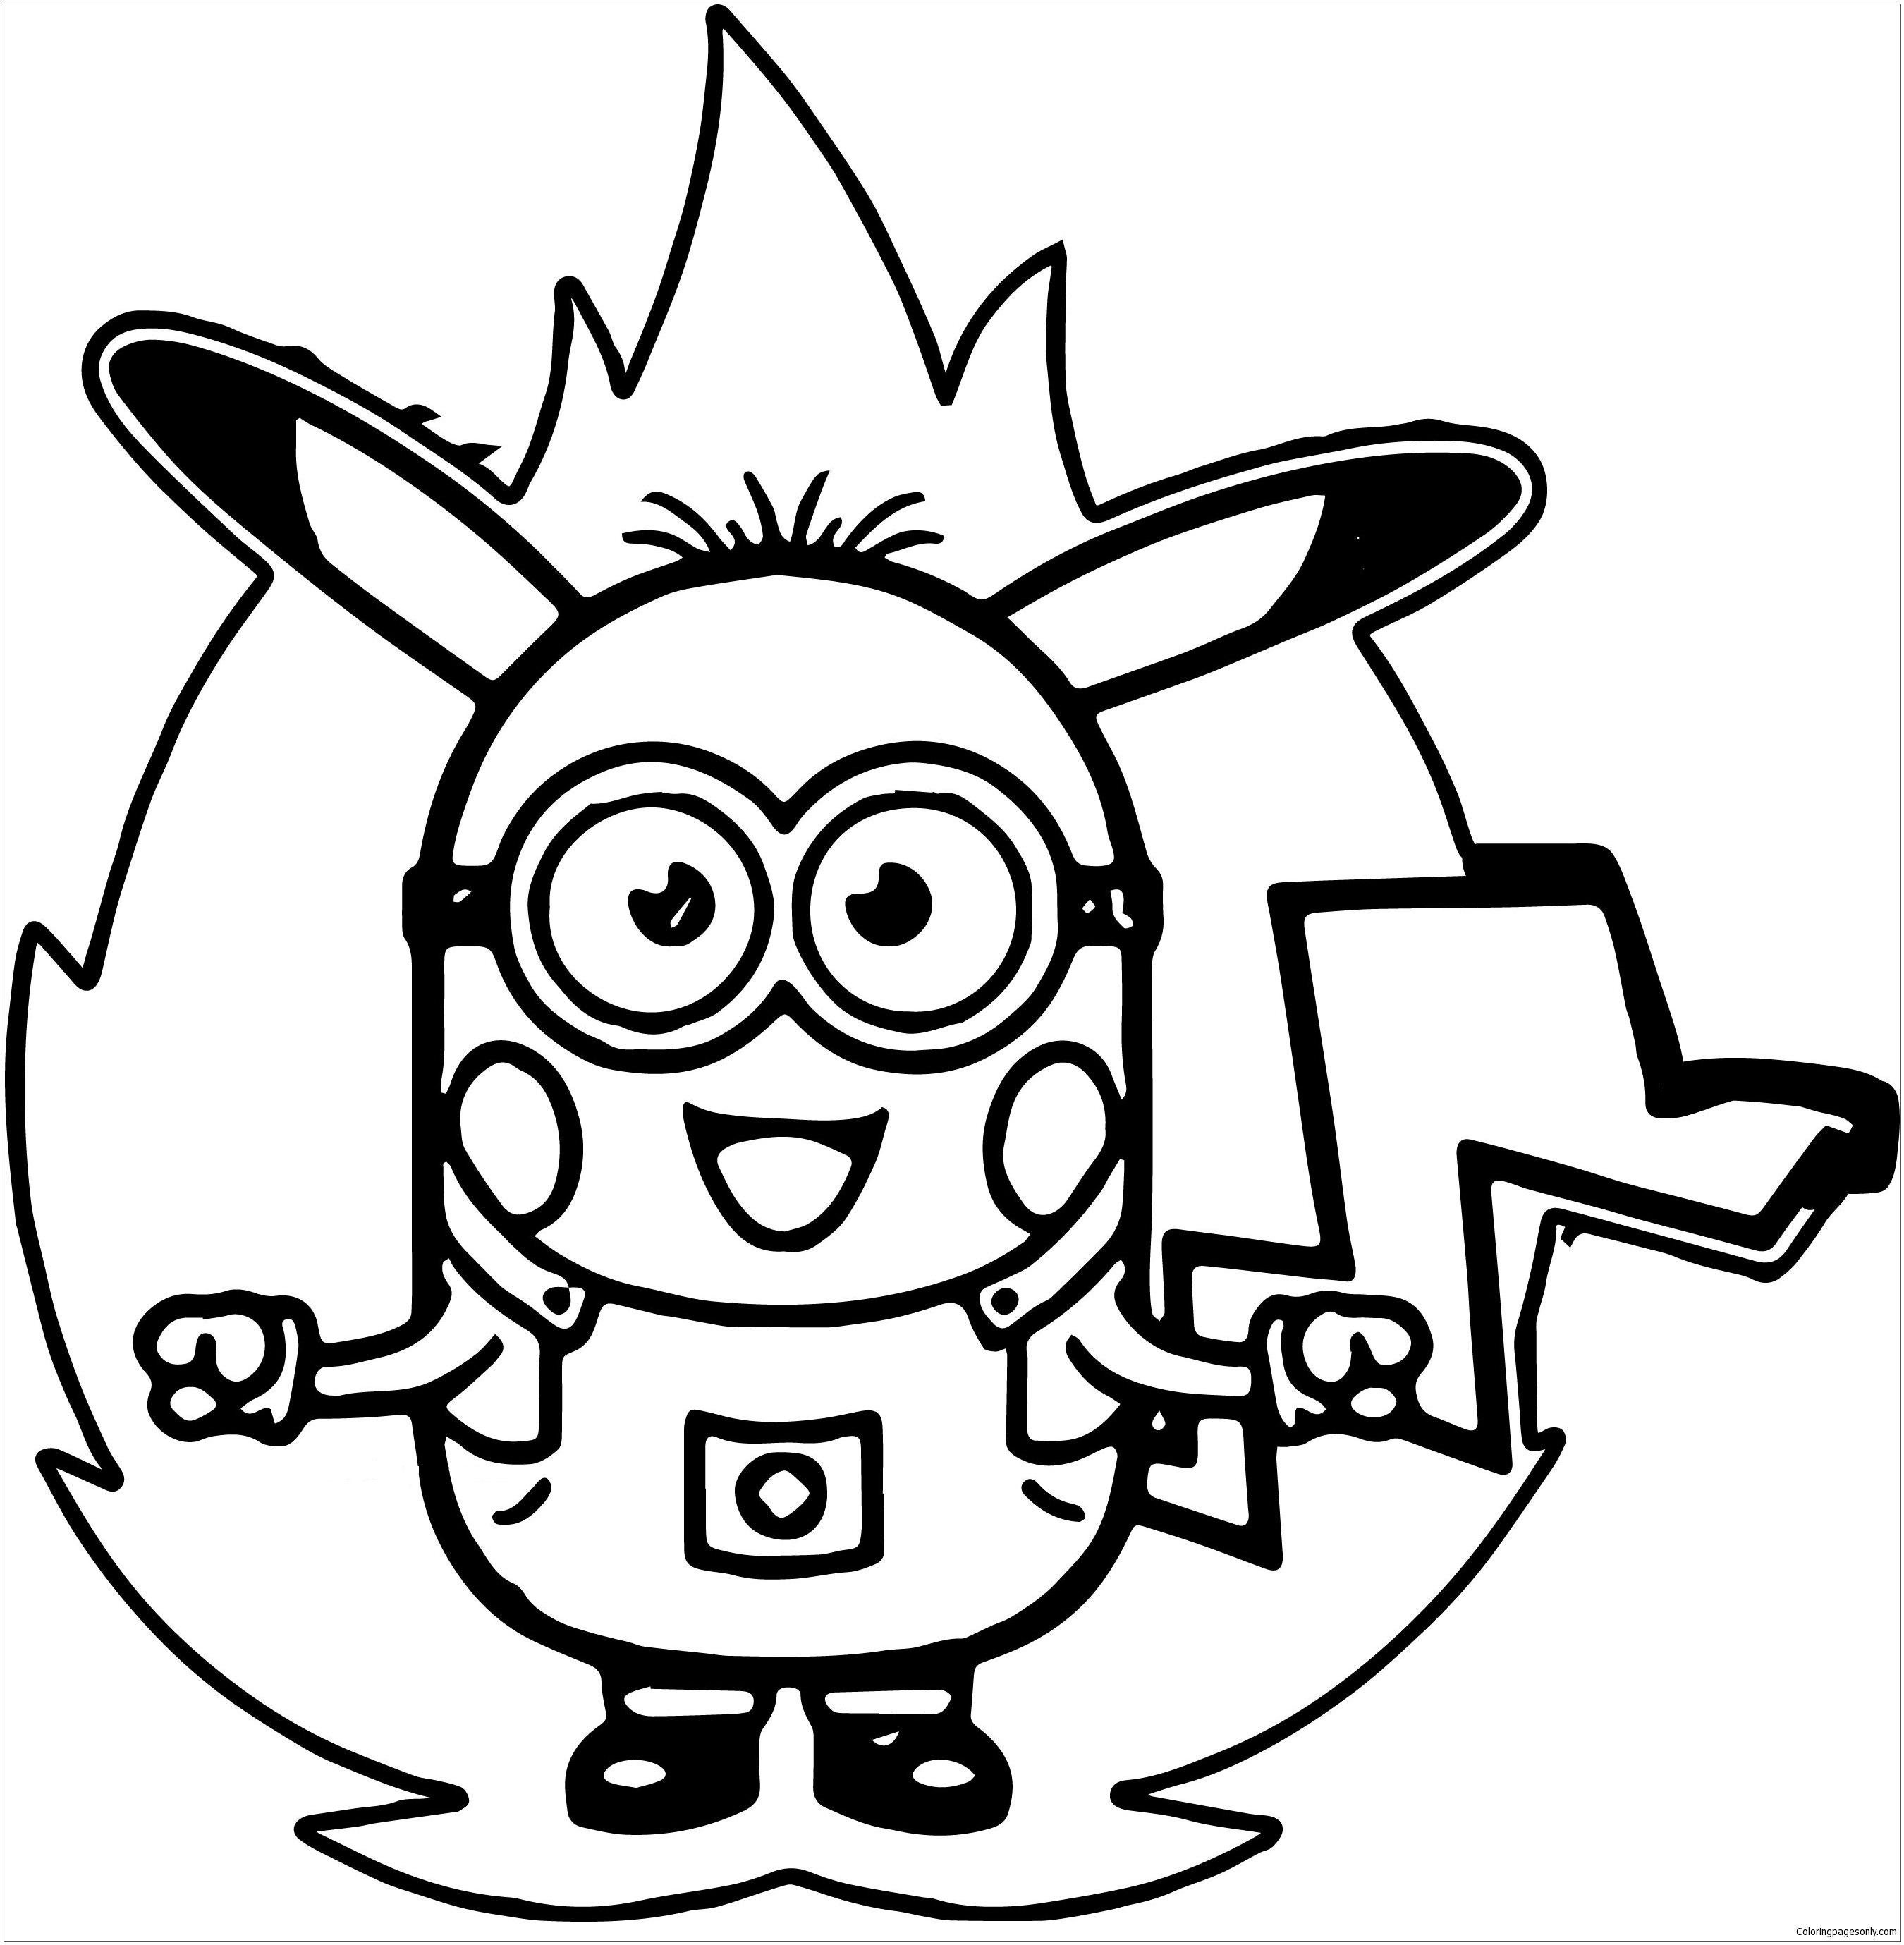 Kleurplaat Minions Dave Minion Pokemon Coloring Page Free Coloring Pages Online